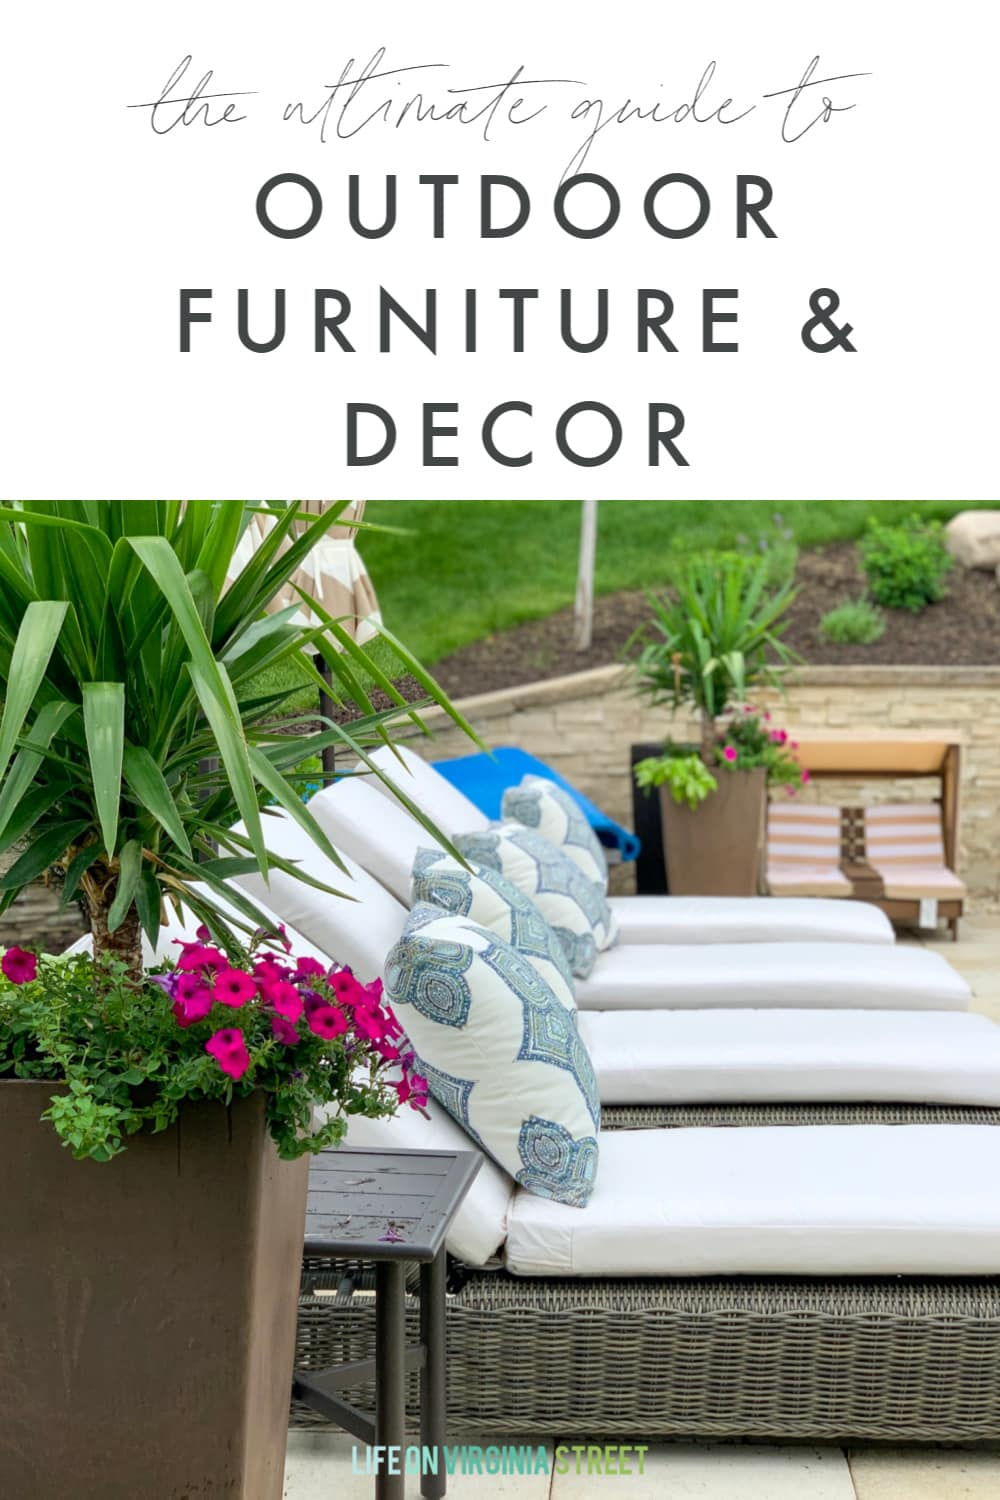 The Ultimate Guide To Outdoor Furniture Decor Life On Virginia Street